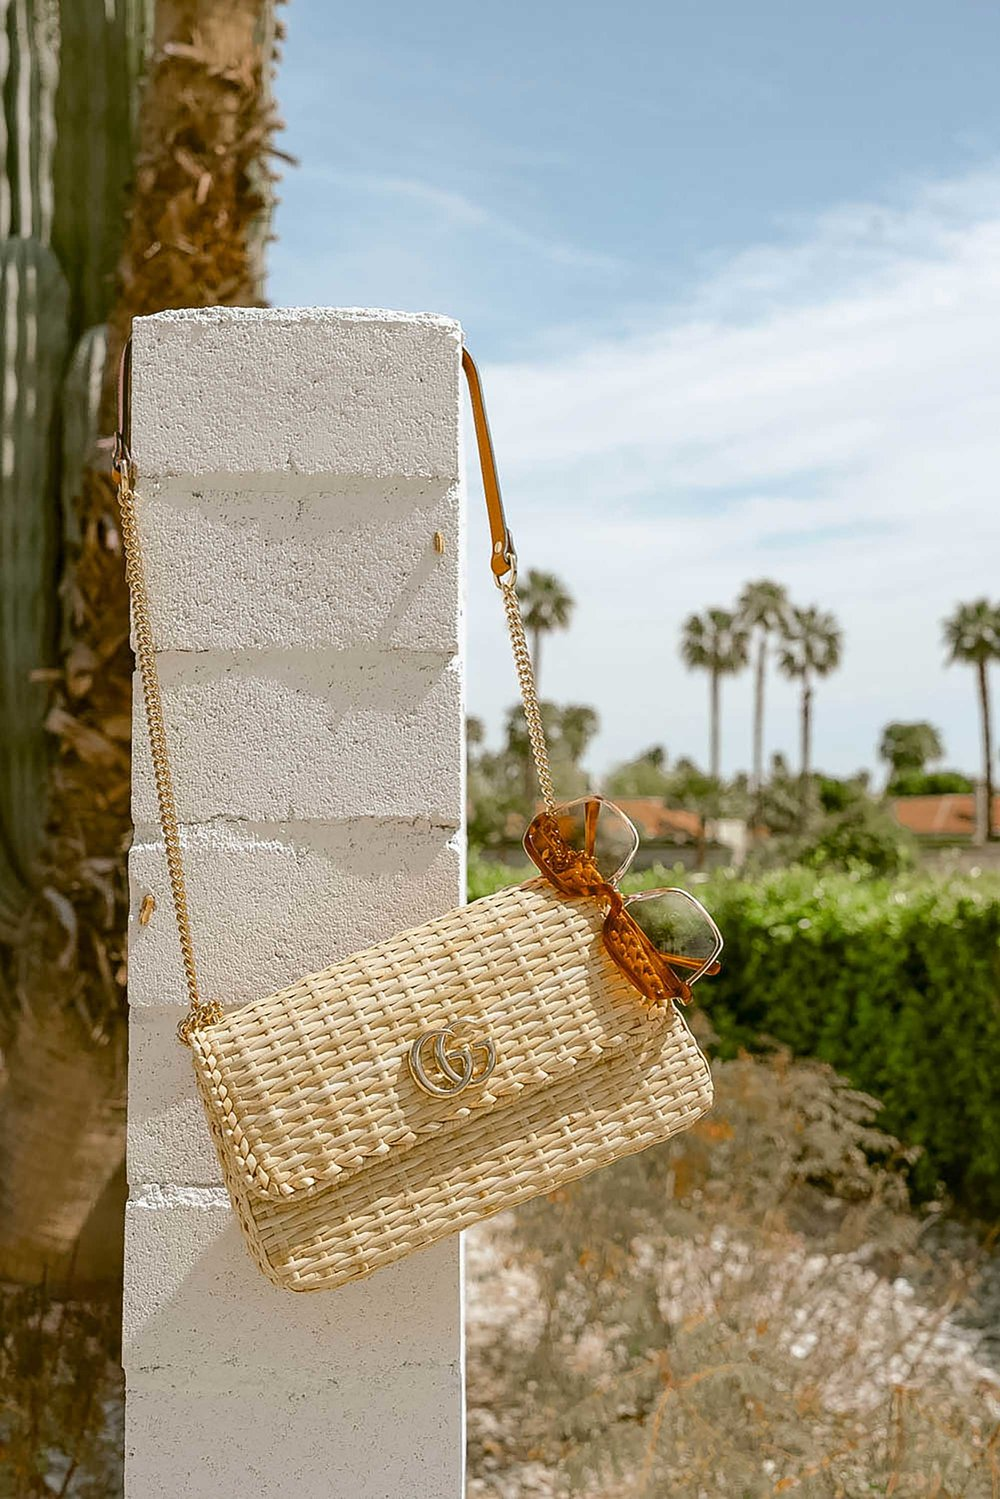 11 spring accessories to buy now:  THE ROW Nude Asymmetric Leather Sandals, Cult Gaia acrylic clutch , ROSANTICA beaded tote in Palm Springs | @sarahchristine - 17.jpeg